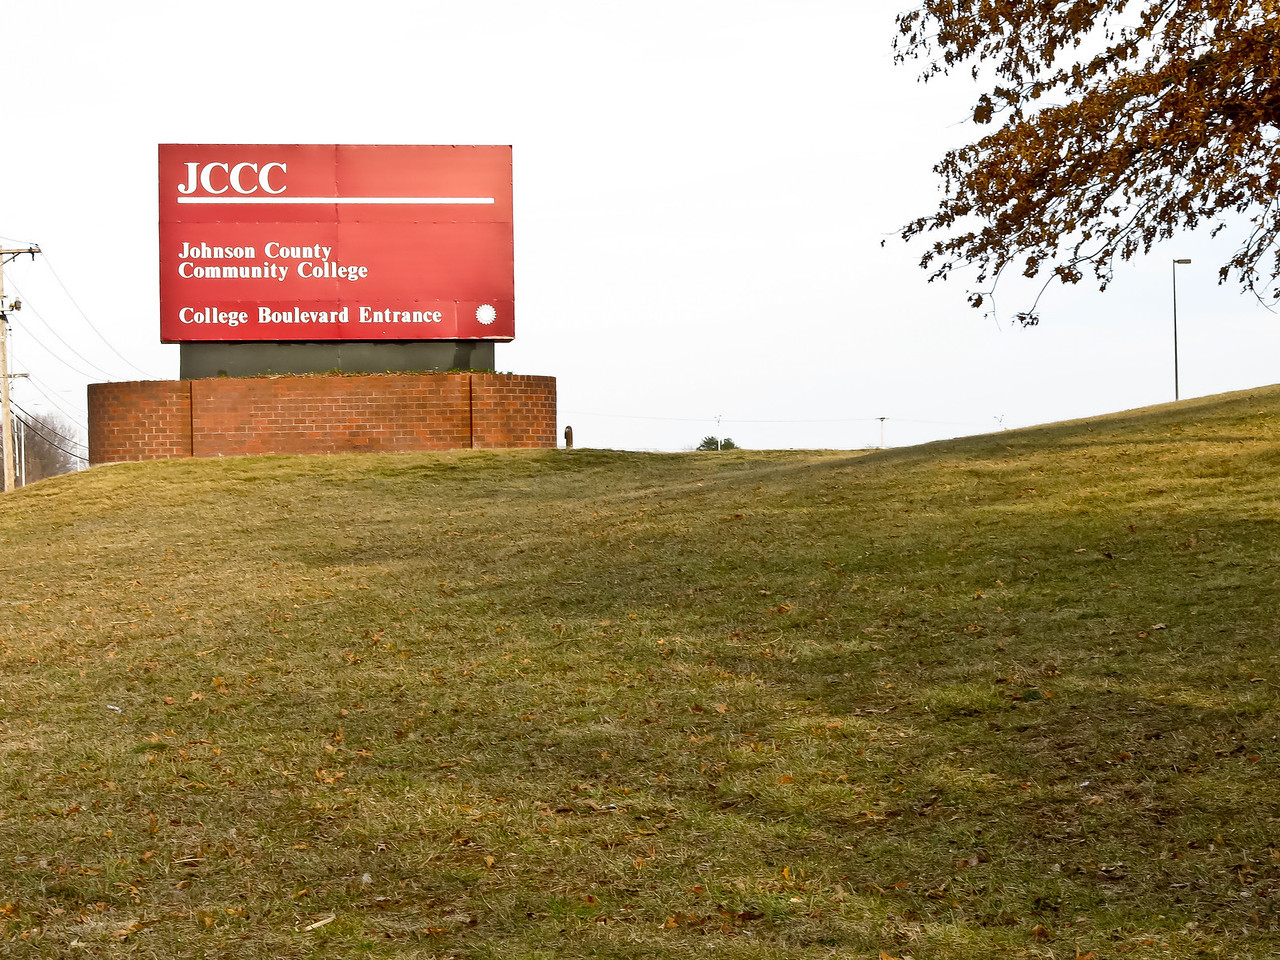 Johnson County Community College in Overland Park, Kansas, offers the railroad course that Nathan is taking.